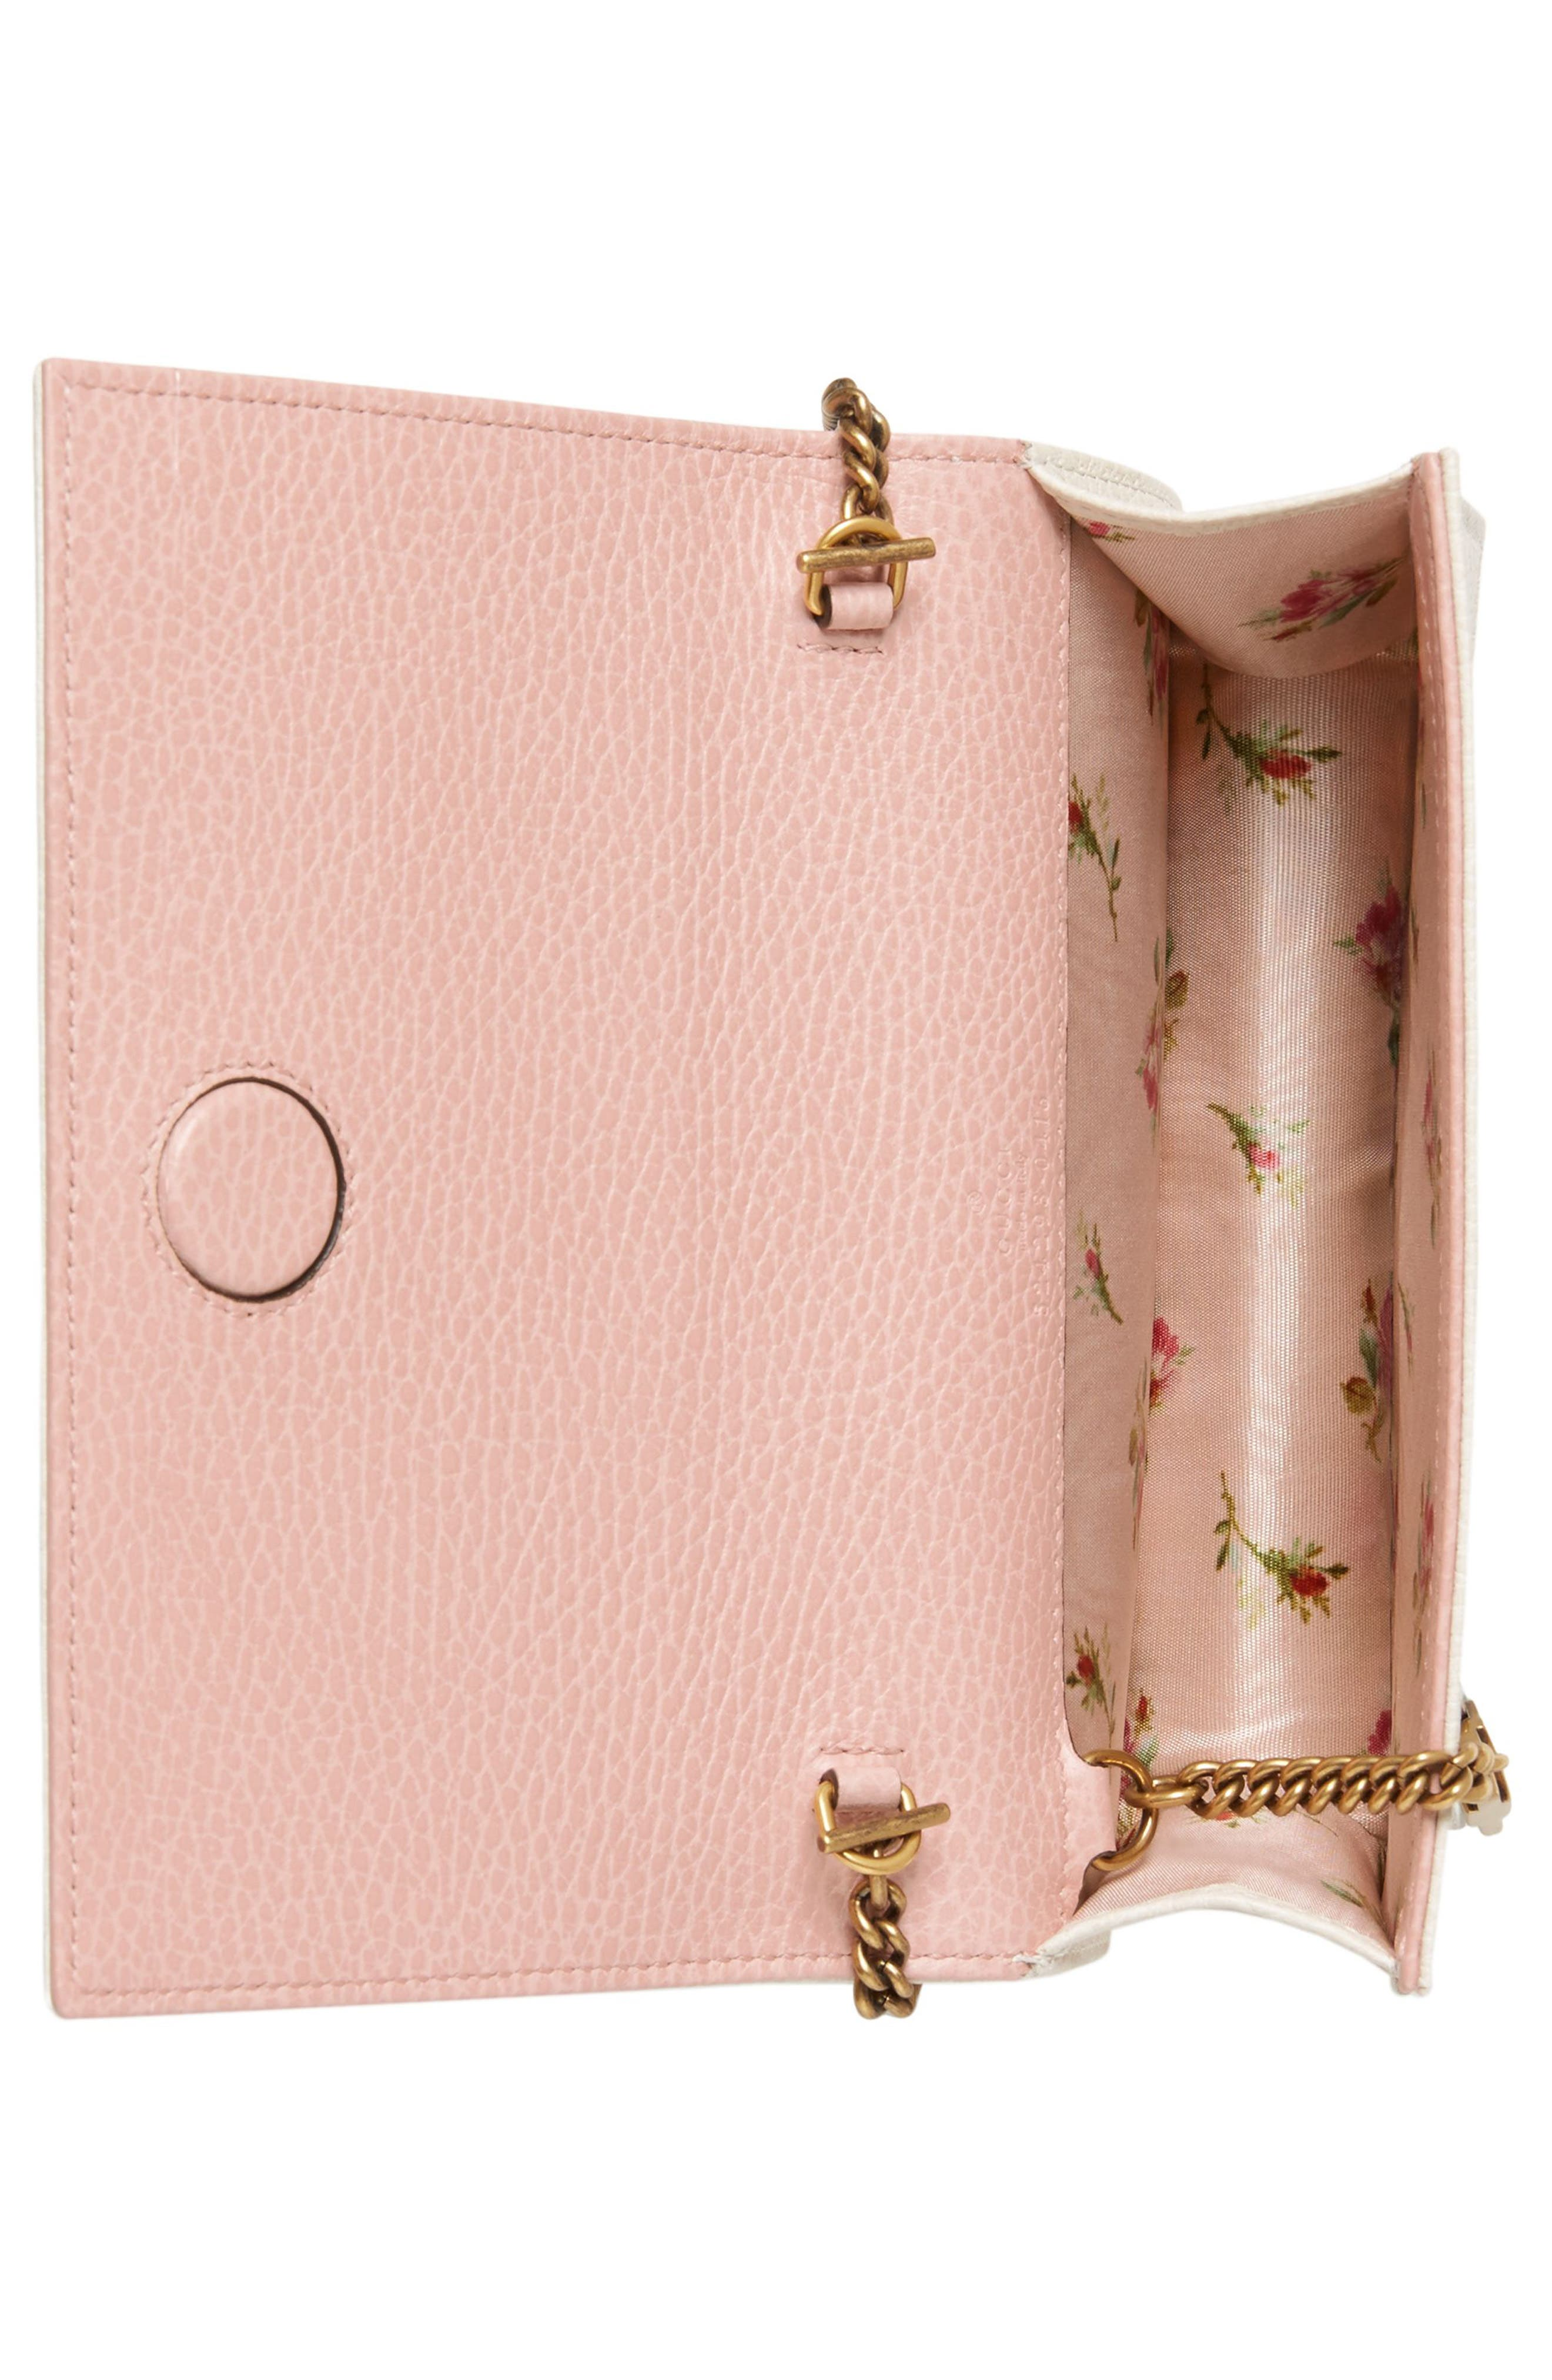 Fiocchino Leather Wallet on a Chain,                             Alternate thumbnail 2, color,                             Mystic White/ Pink/ Crystal